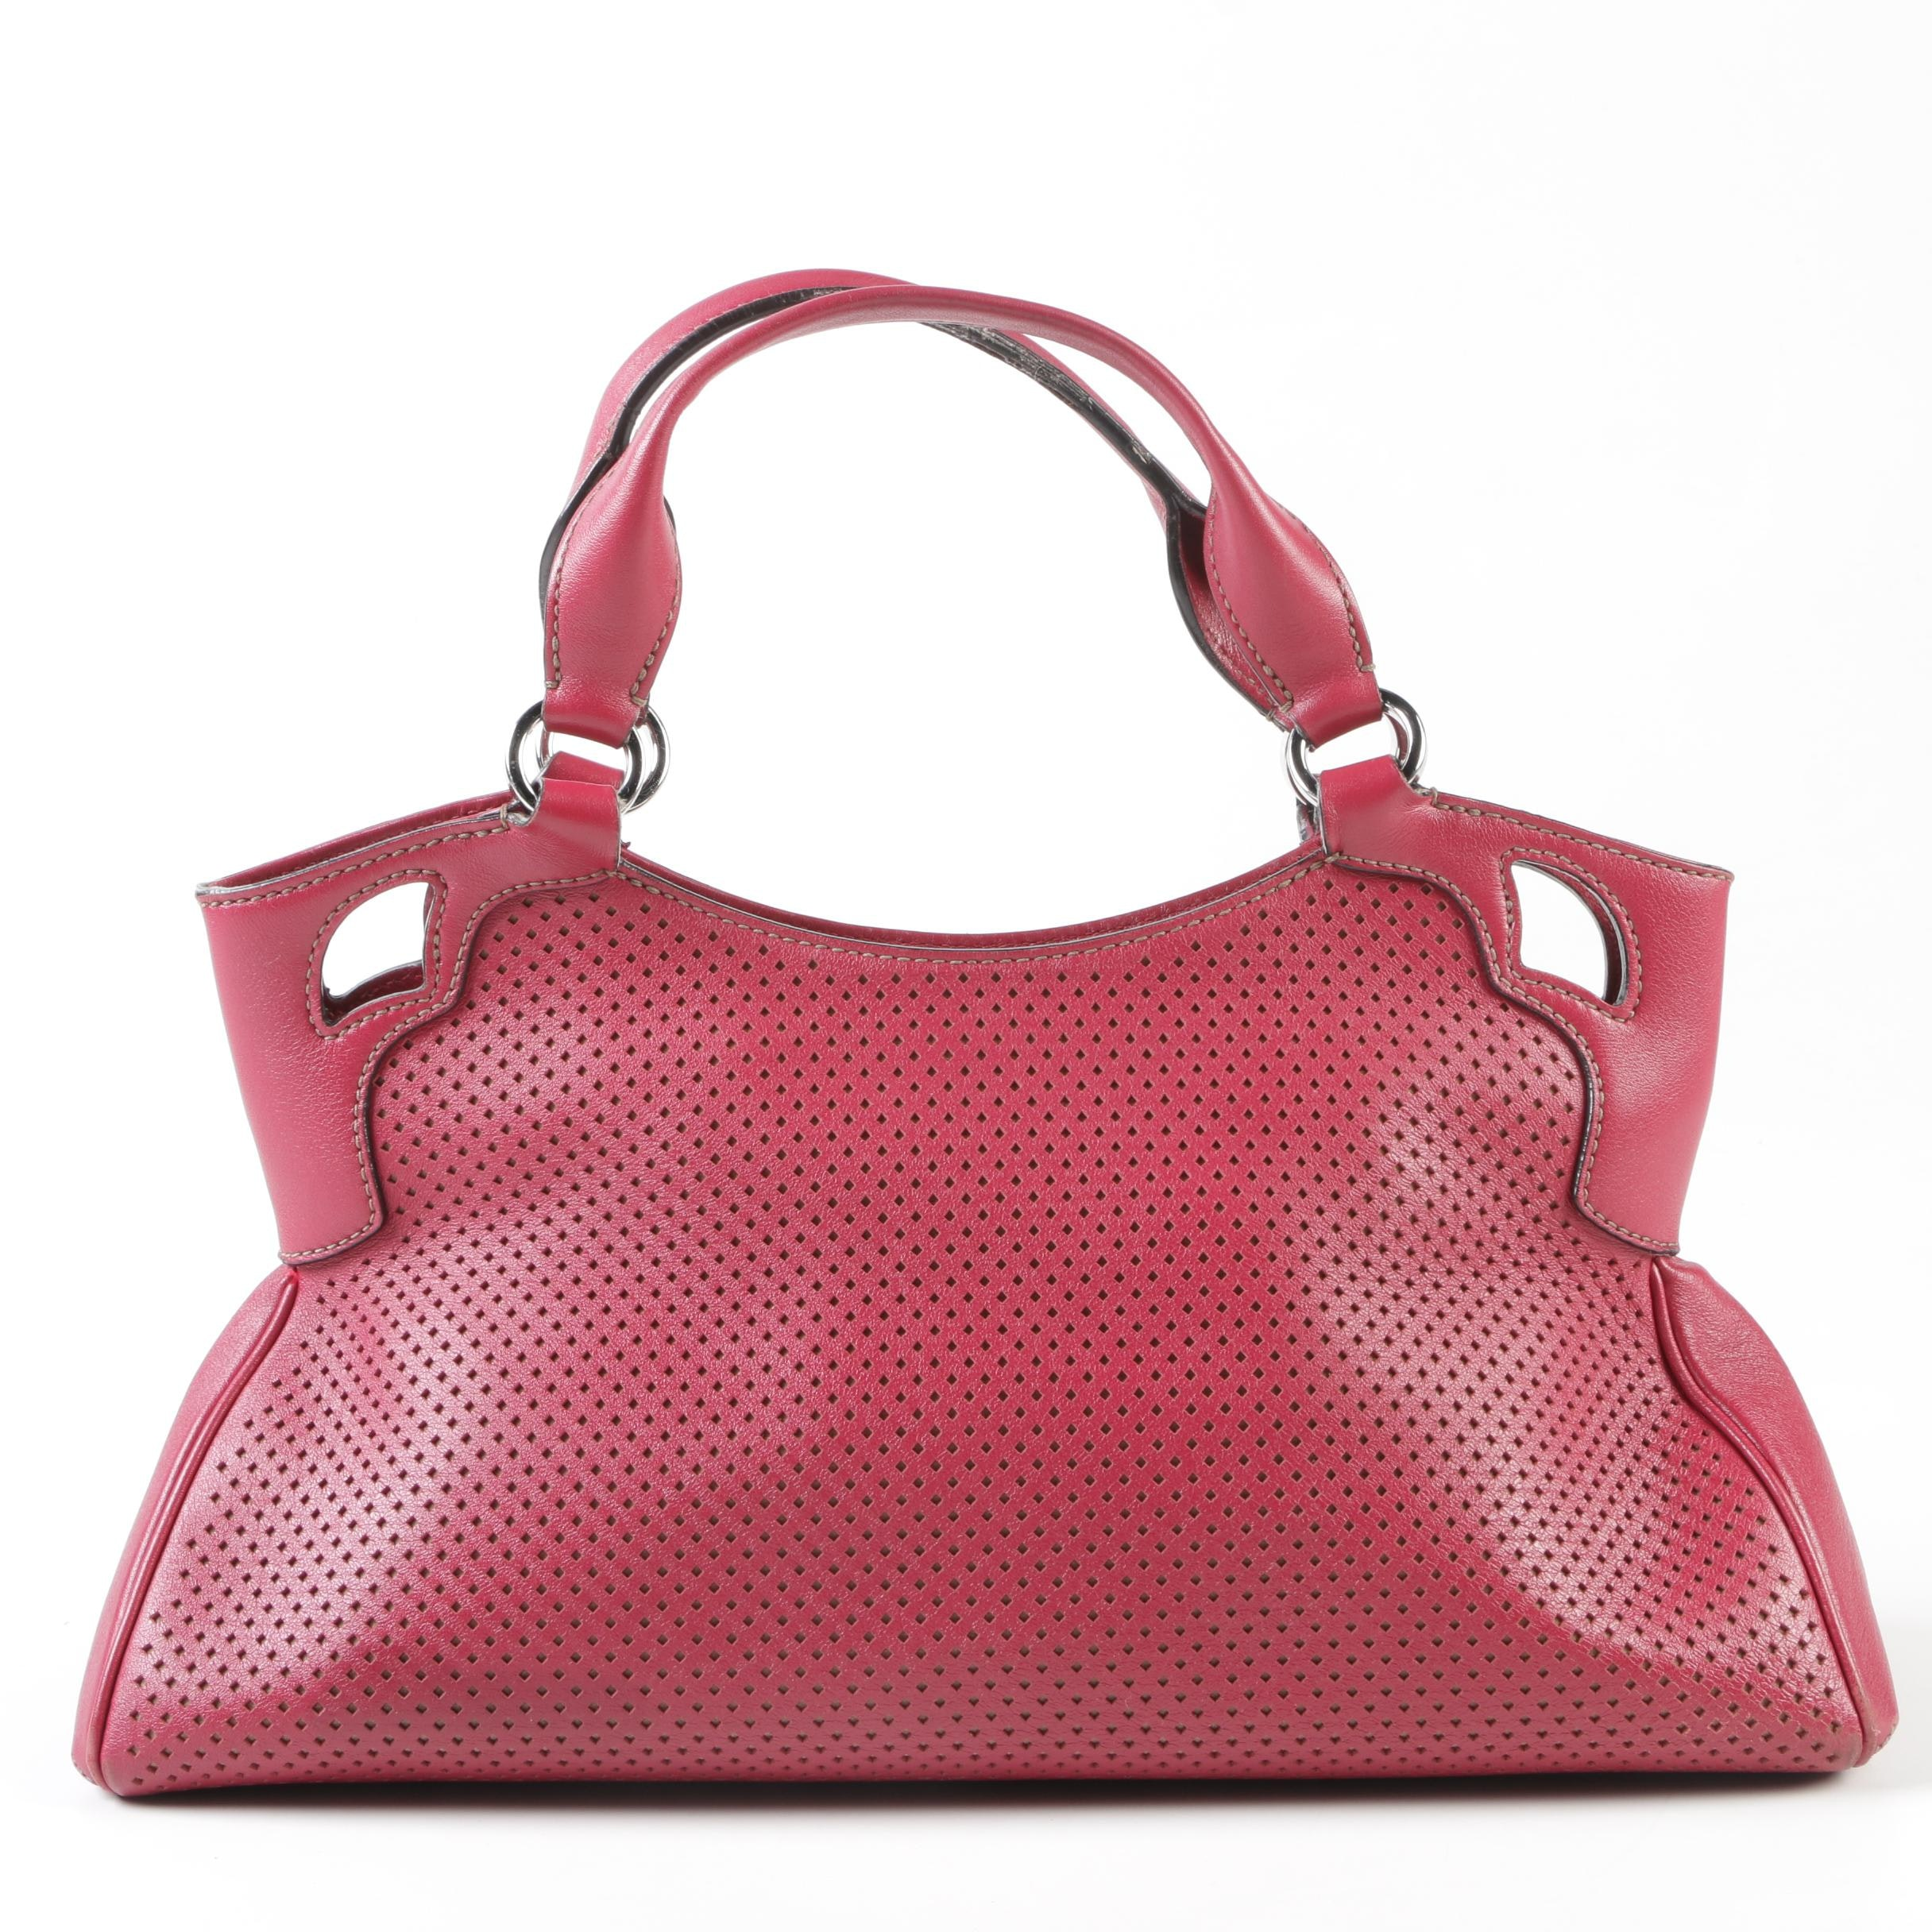 Cartier Perforated Red Leather Marcello de Cartier Small Bag